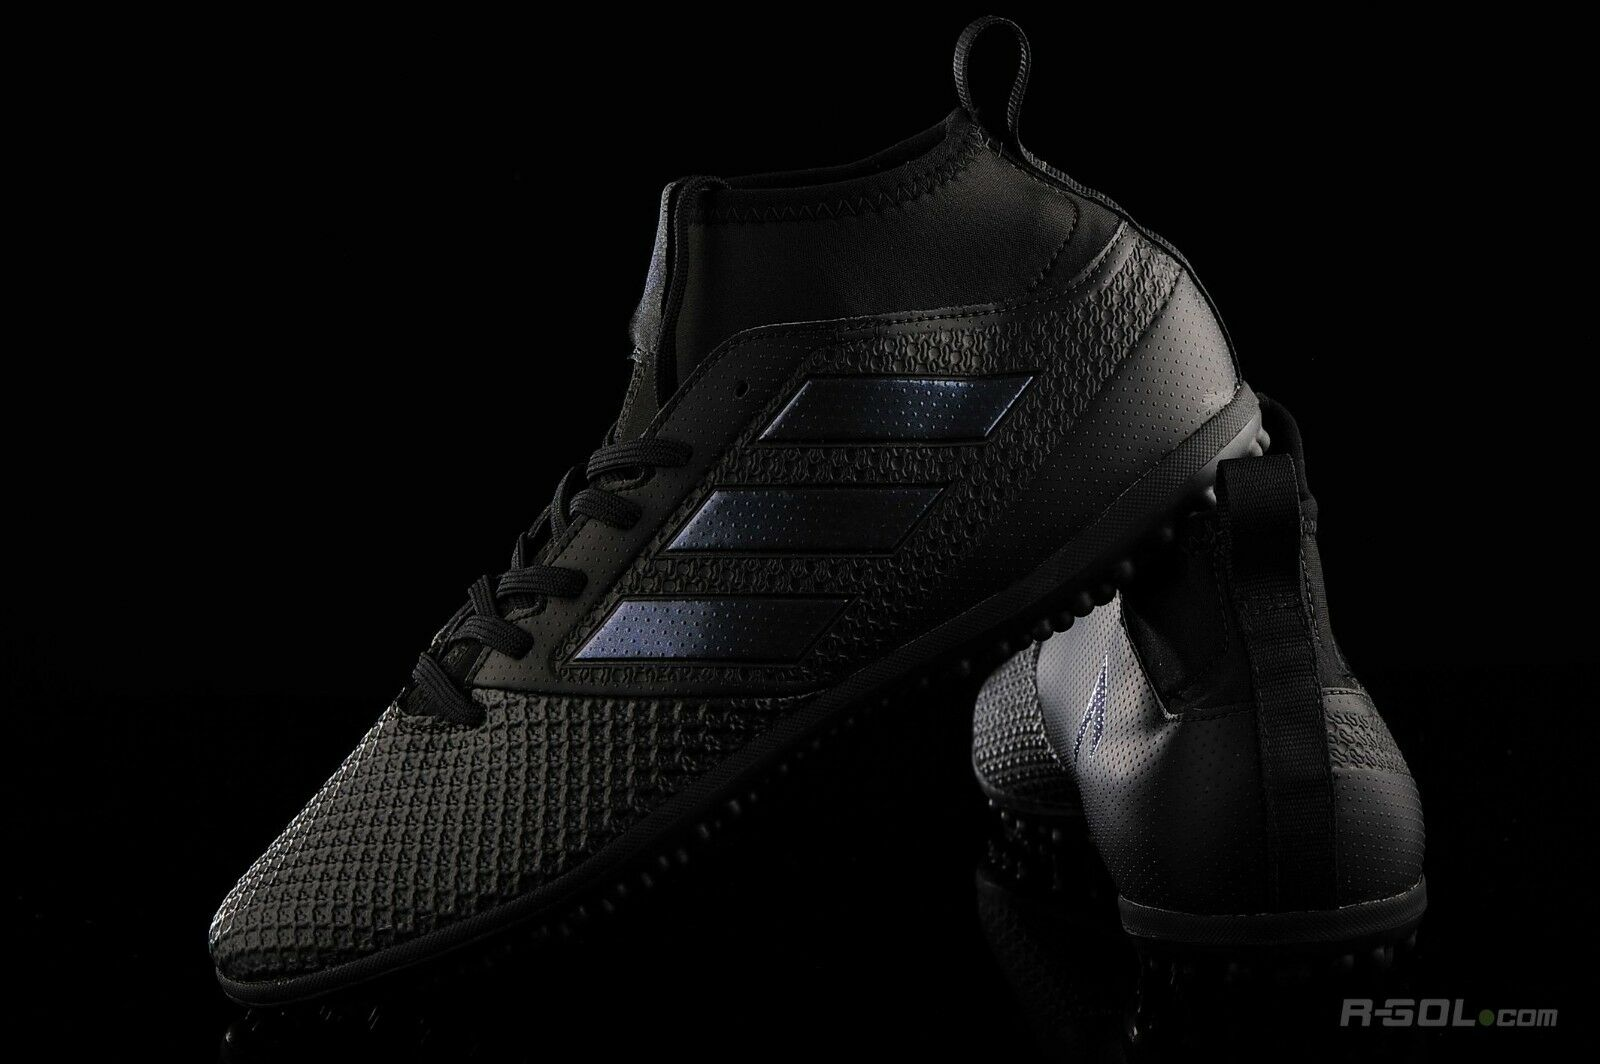 Raro Adidas ACE Tango 17.3 TF Fútbol Zapatillas, UK9, Triple Negro, S77084